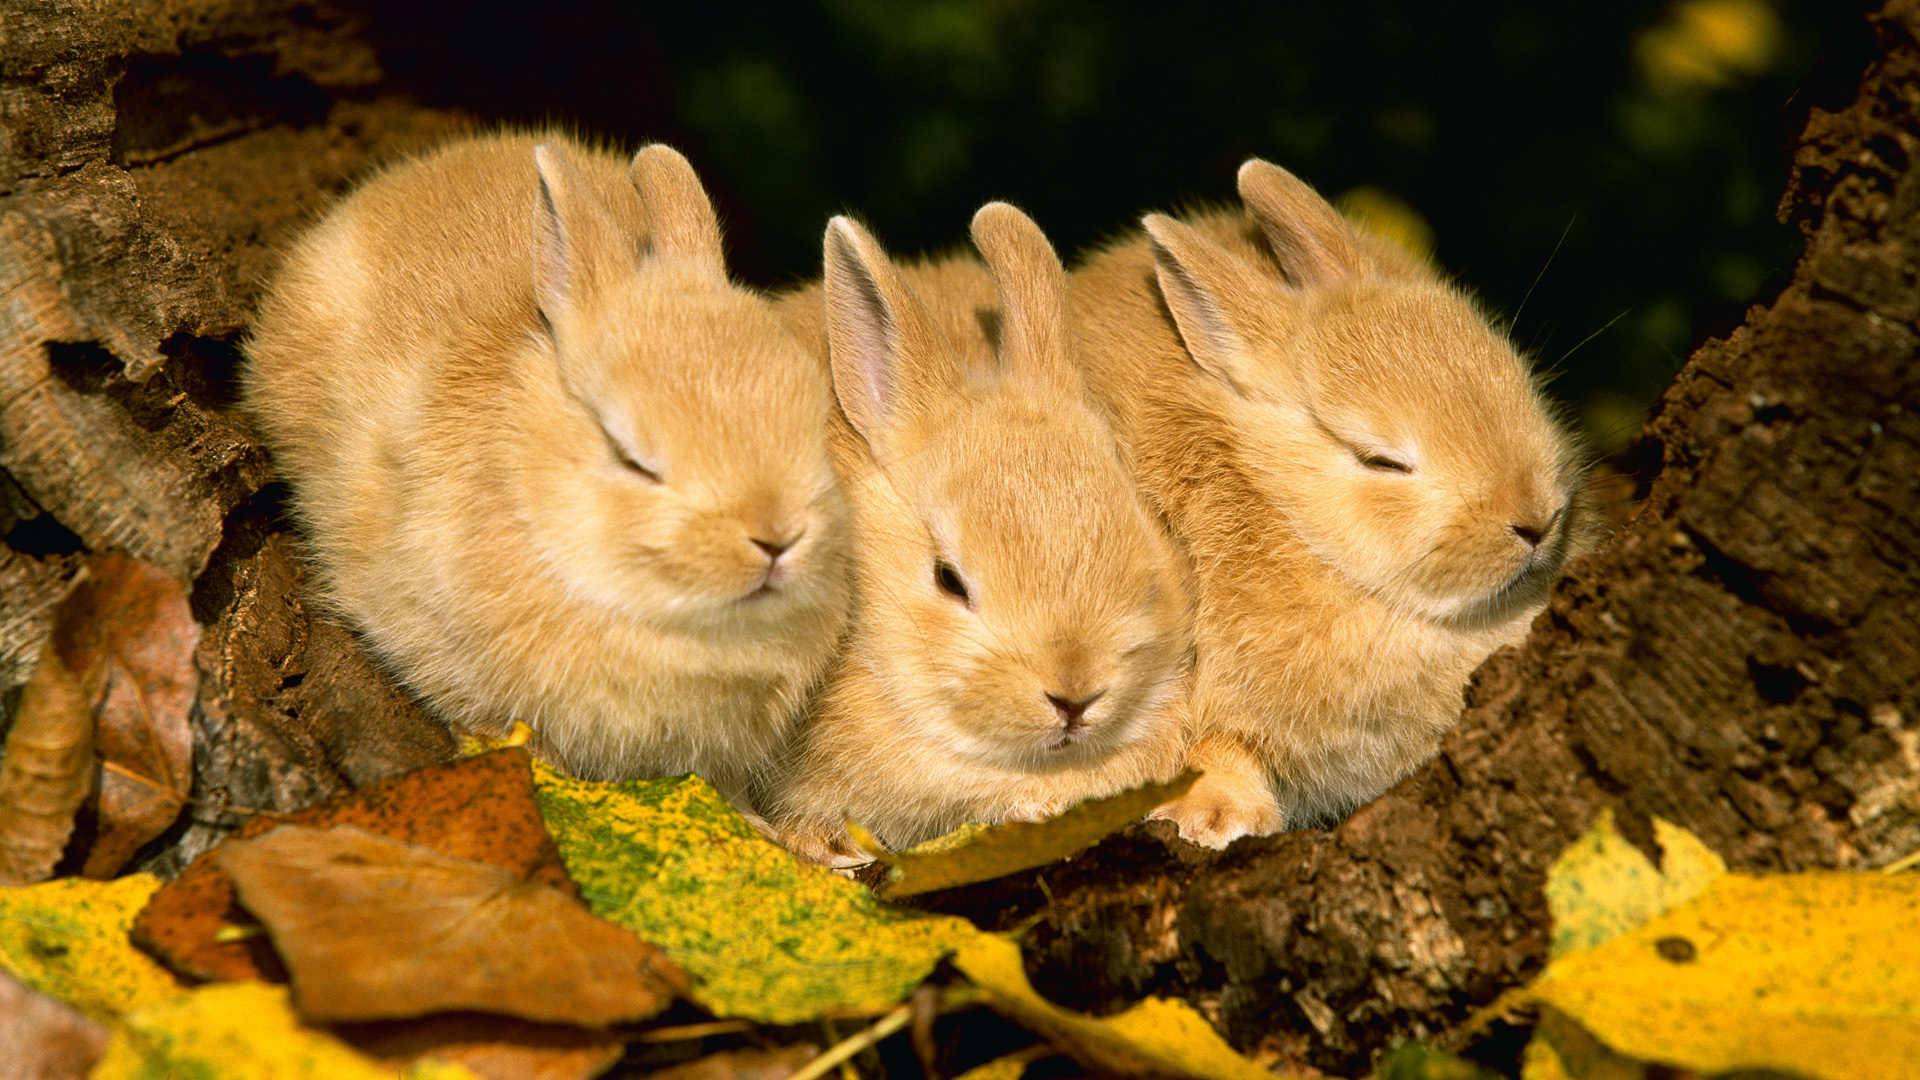 38007 download wallpaper Animals, Rabbits screensavers and pictures for free